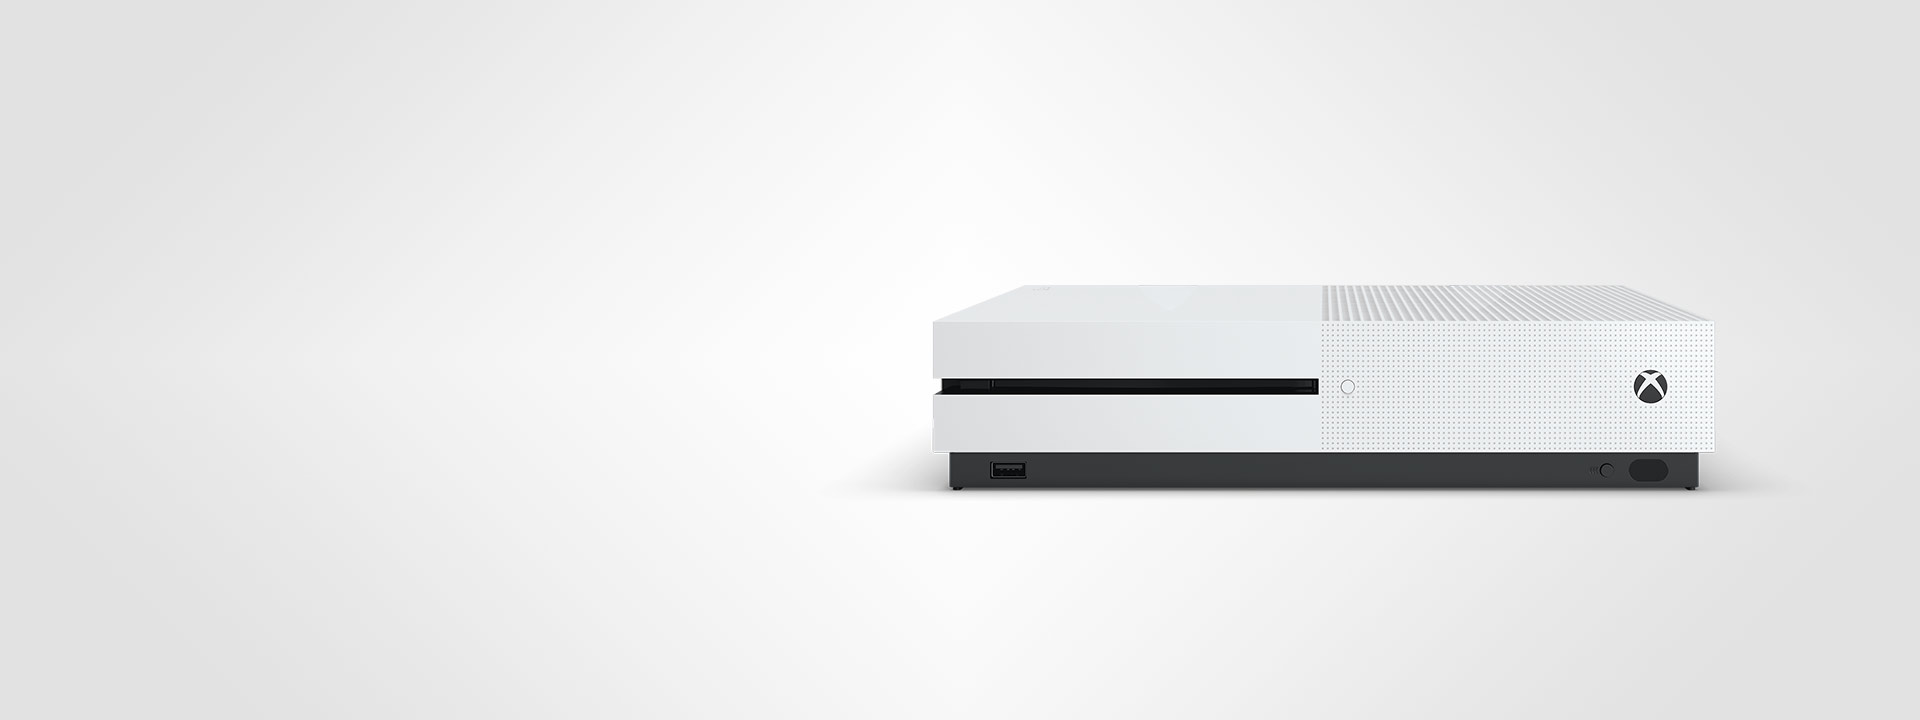 Vista frontal de la consola Xbox One S